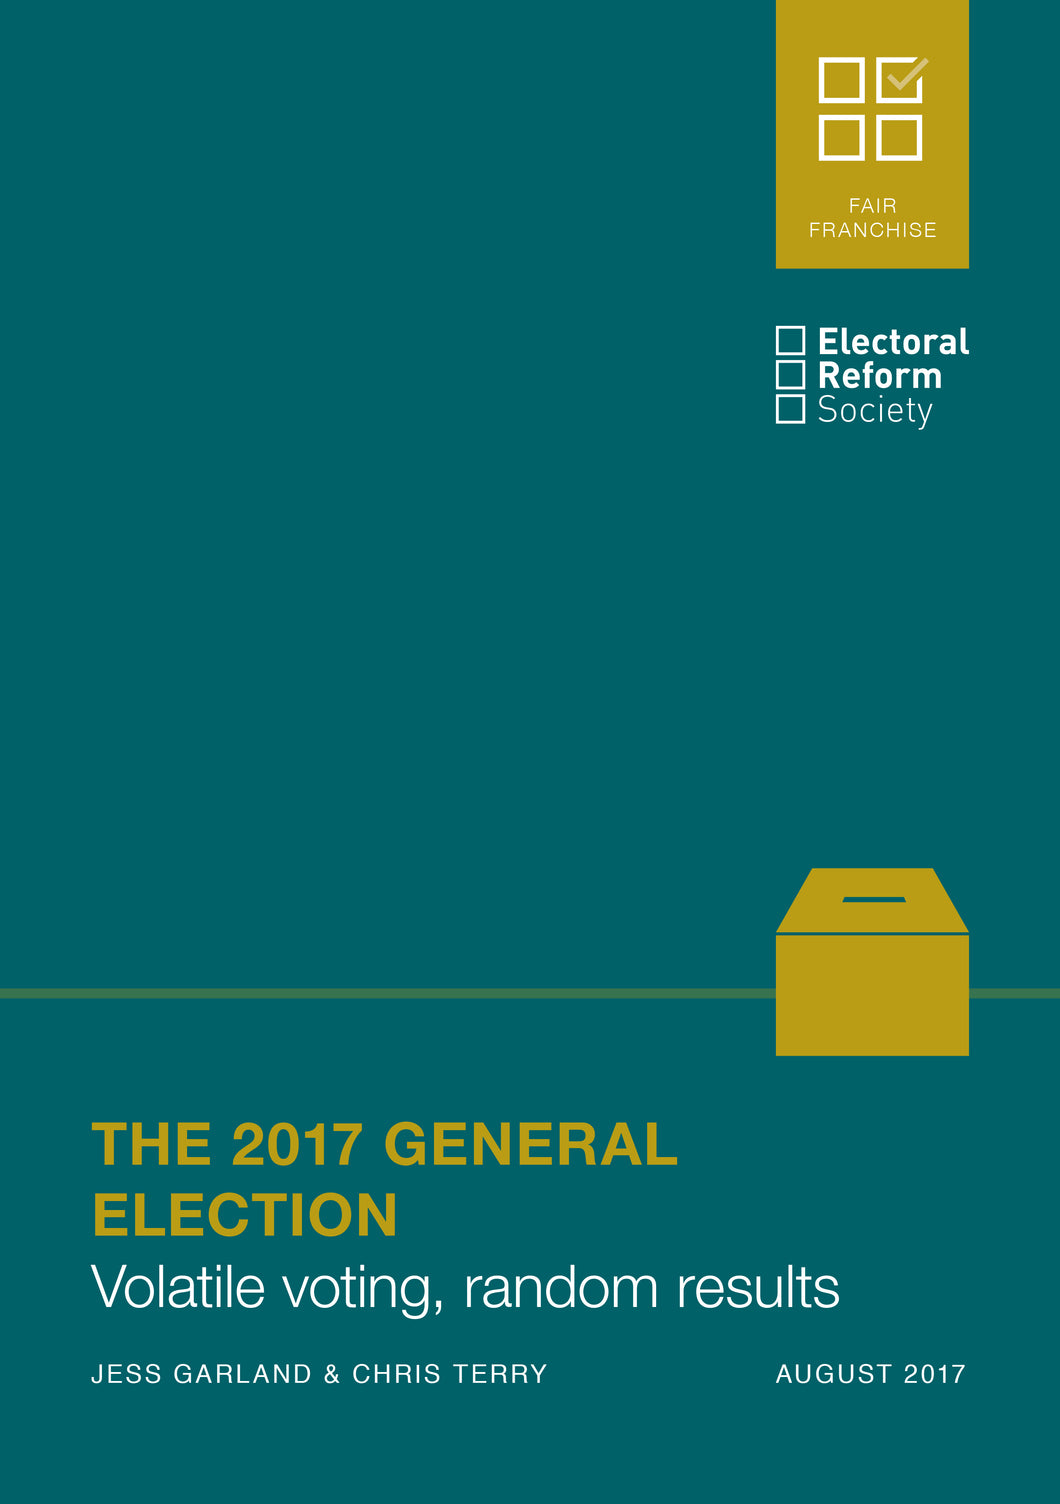 The 2017 General Election: Volatile voting, random results